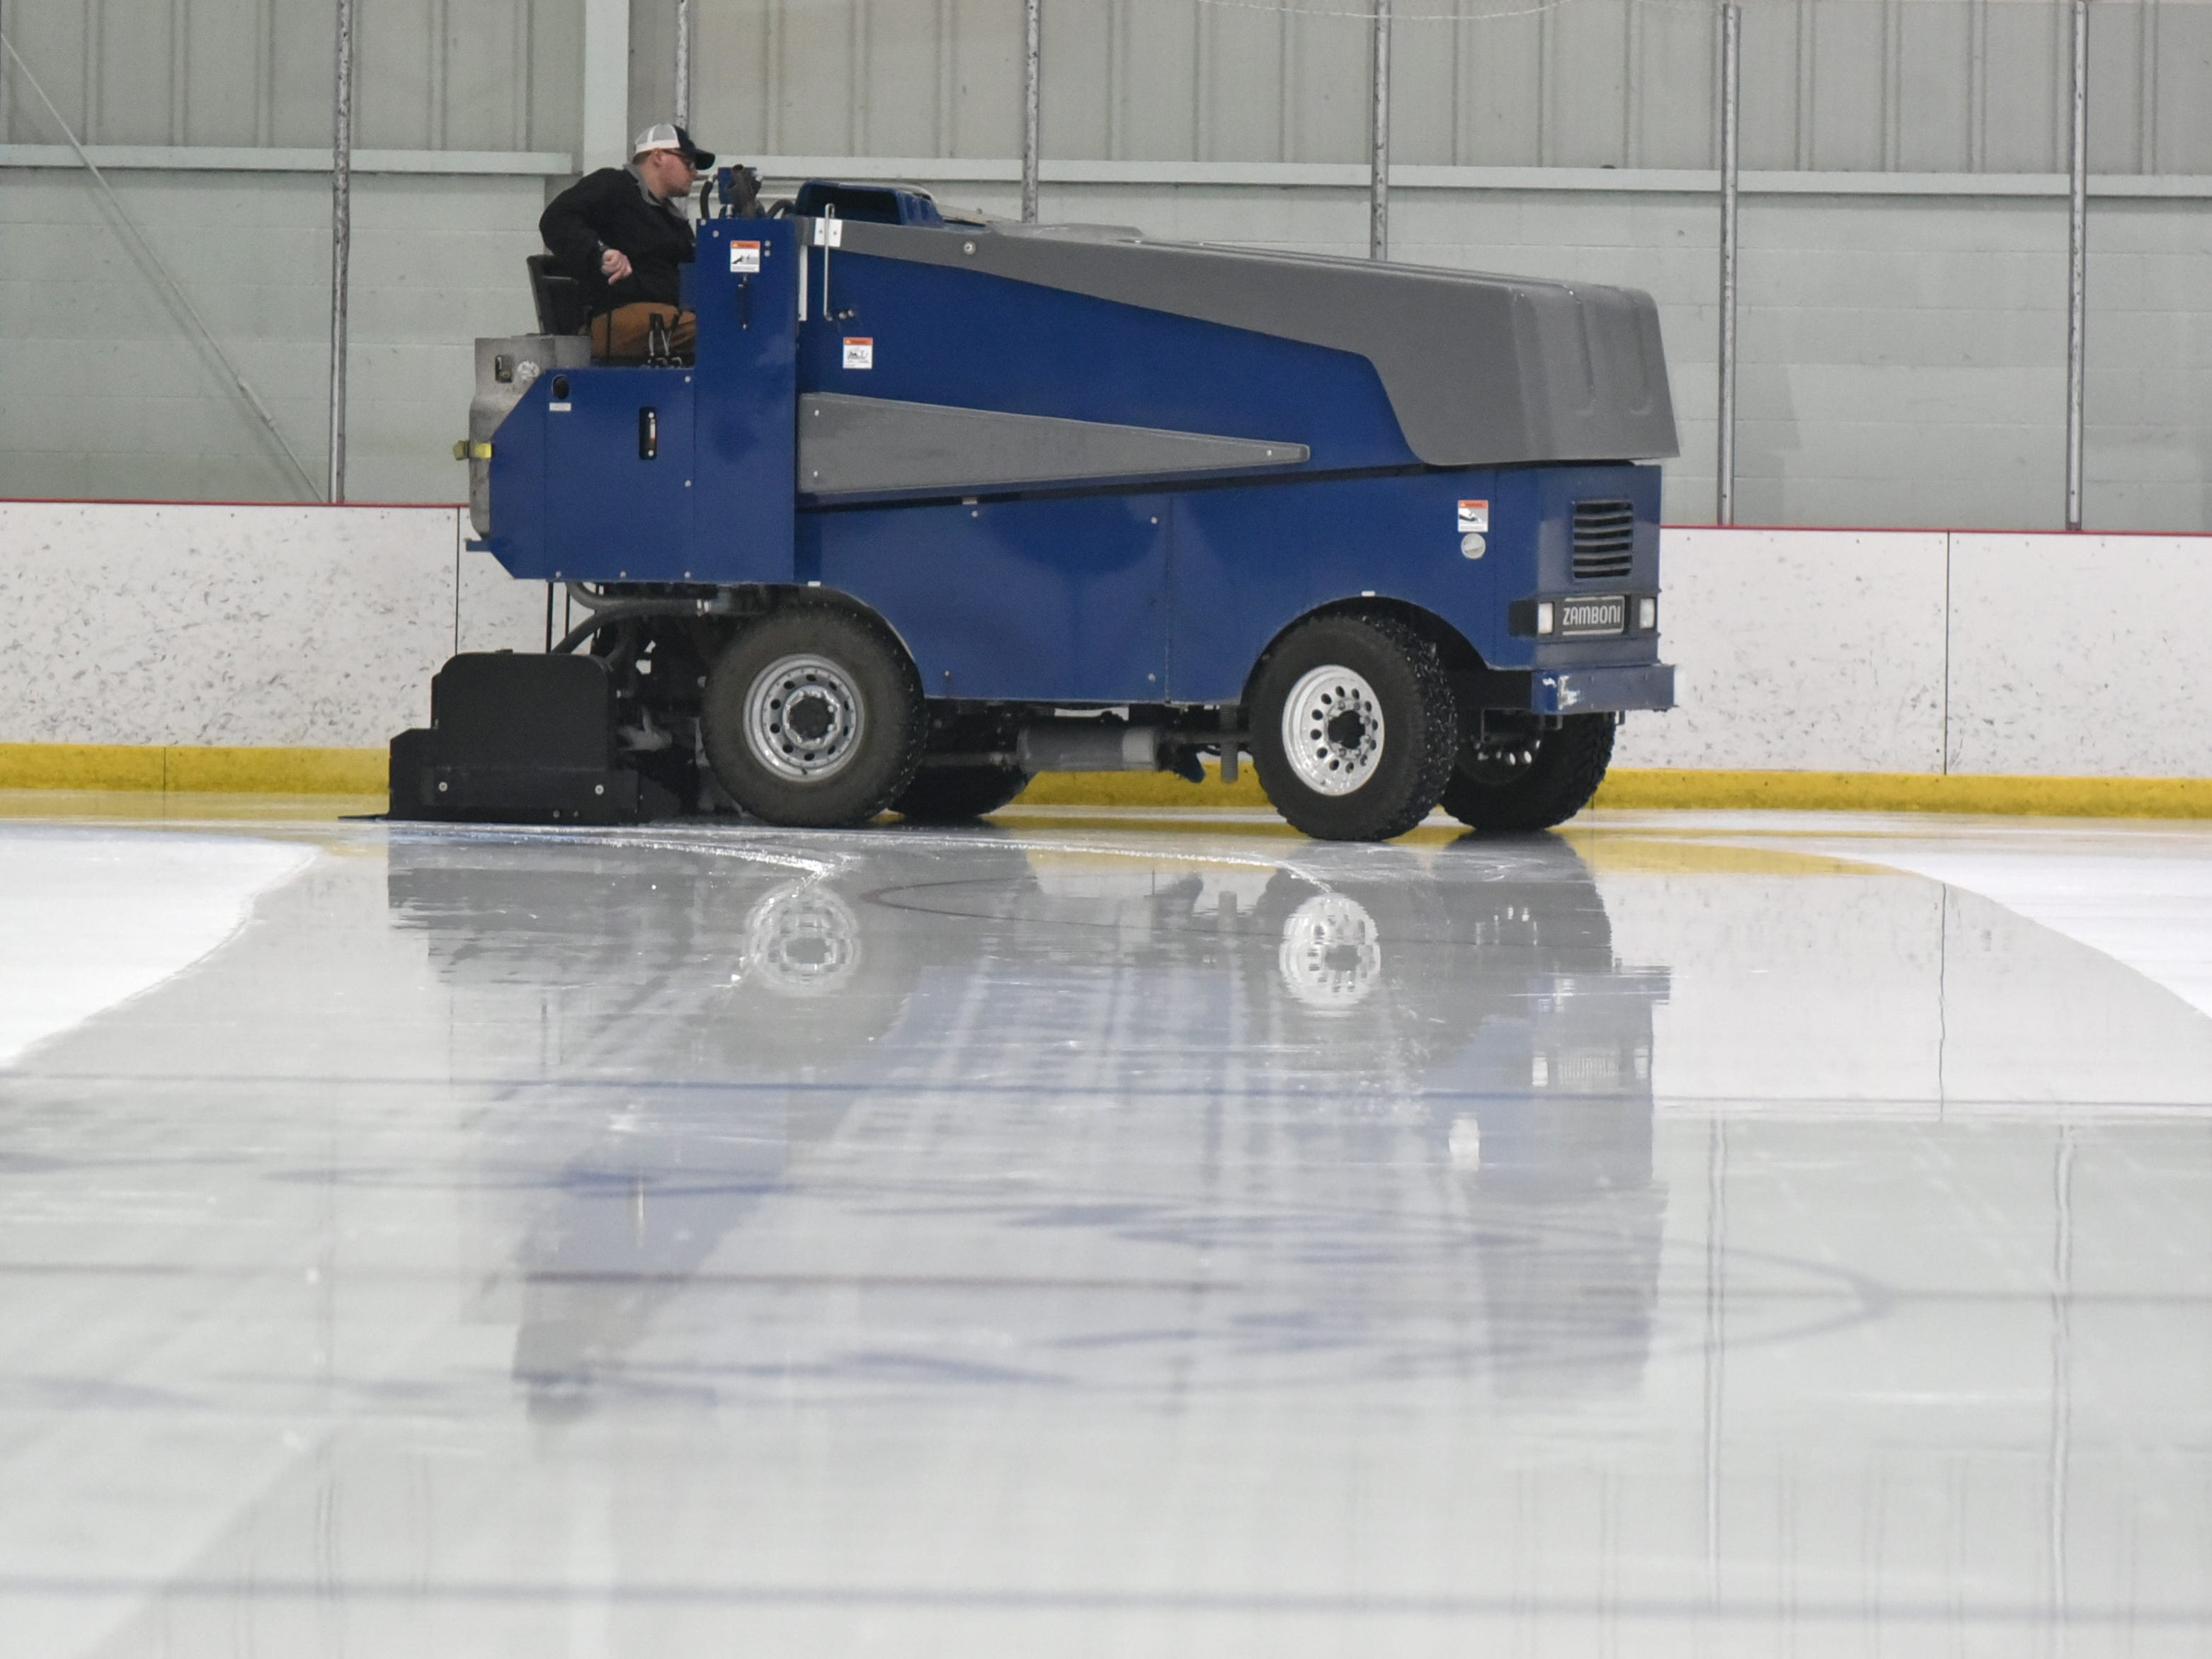 A Zamboni driver re-surfaces the ice at the Novi Ice Arena on March 2 before the start of MHSAA boys regional ice hockey playoff game.